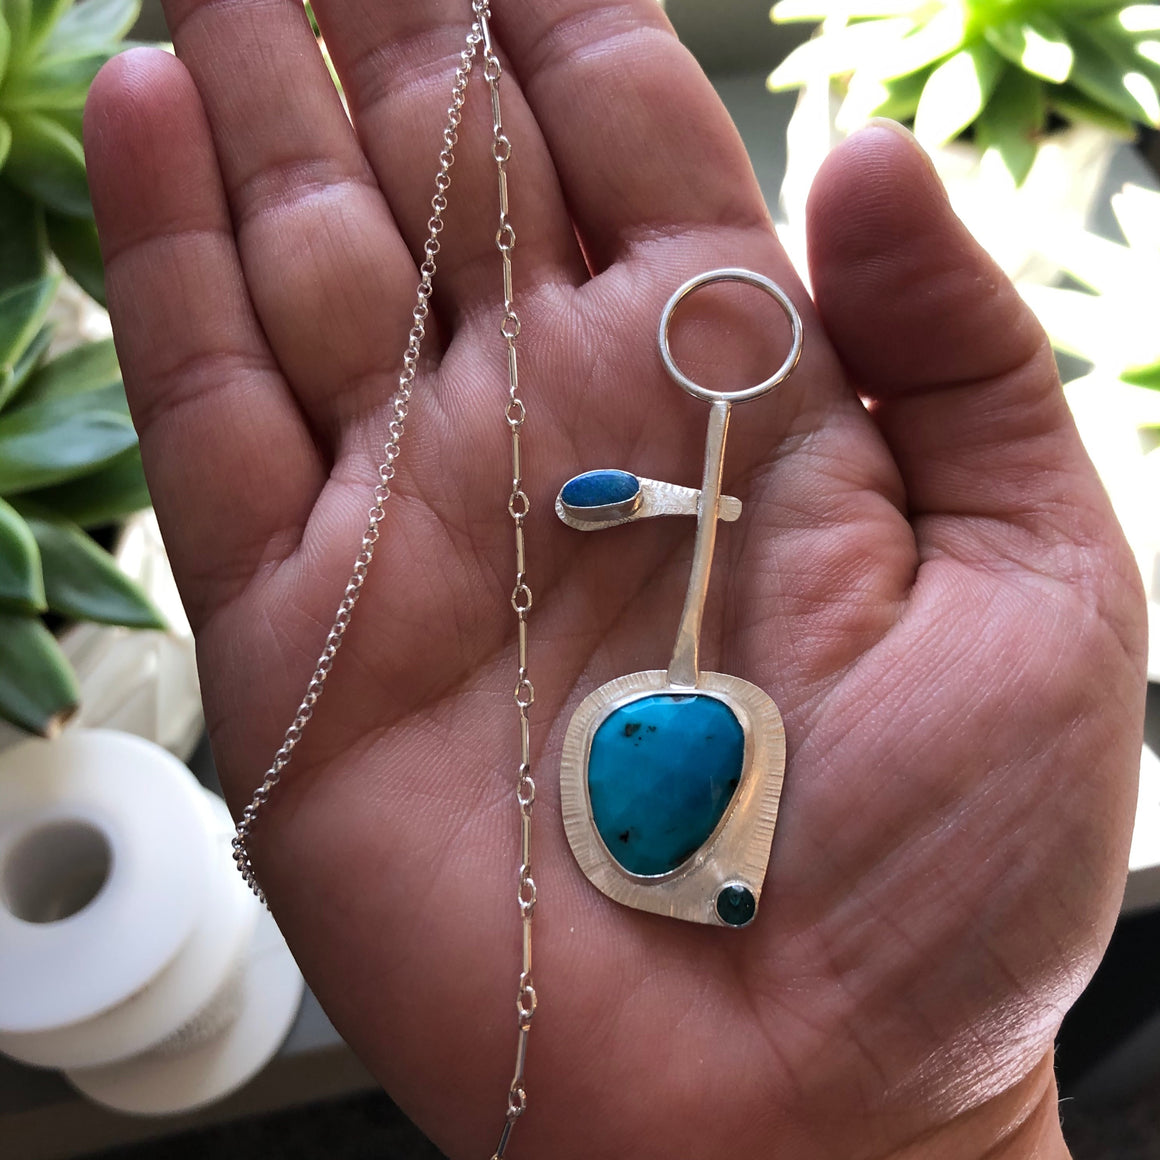 faceted turquoise with tourmaline and opal fancy pendulum silver pendant on deluxe bar link silver chain